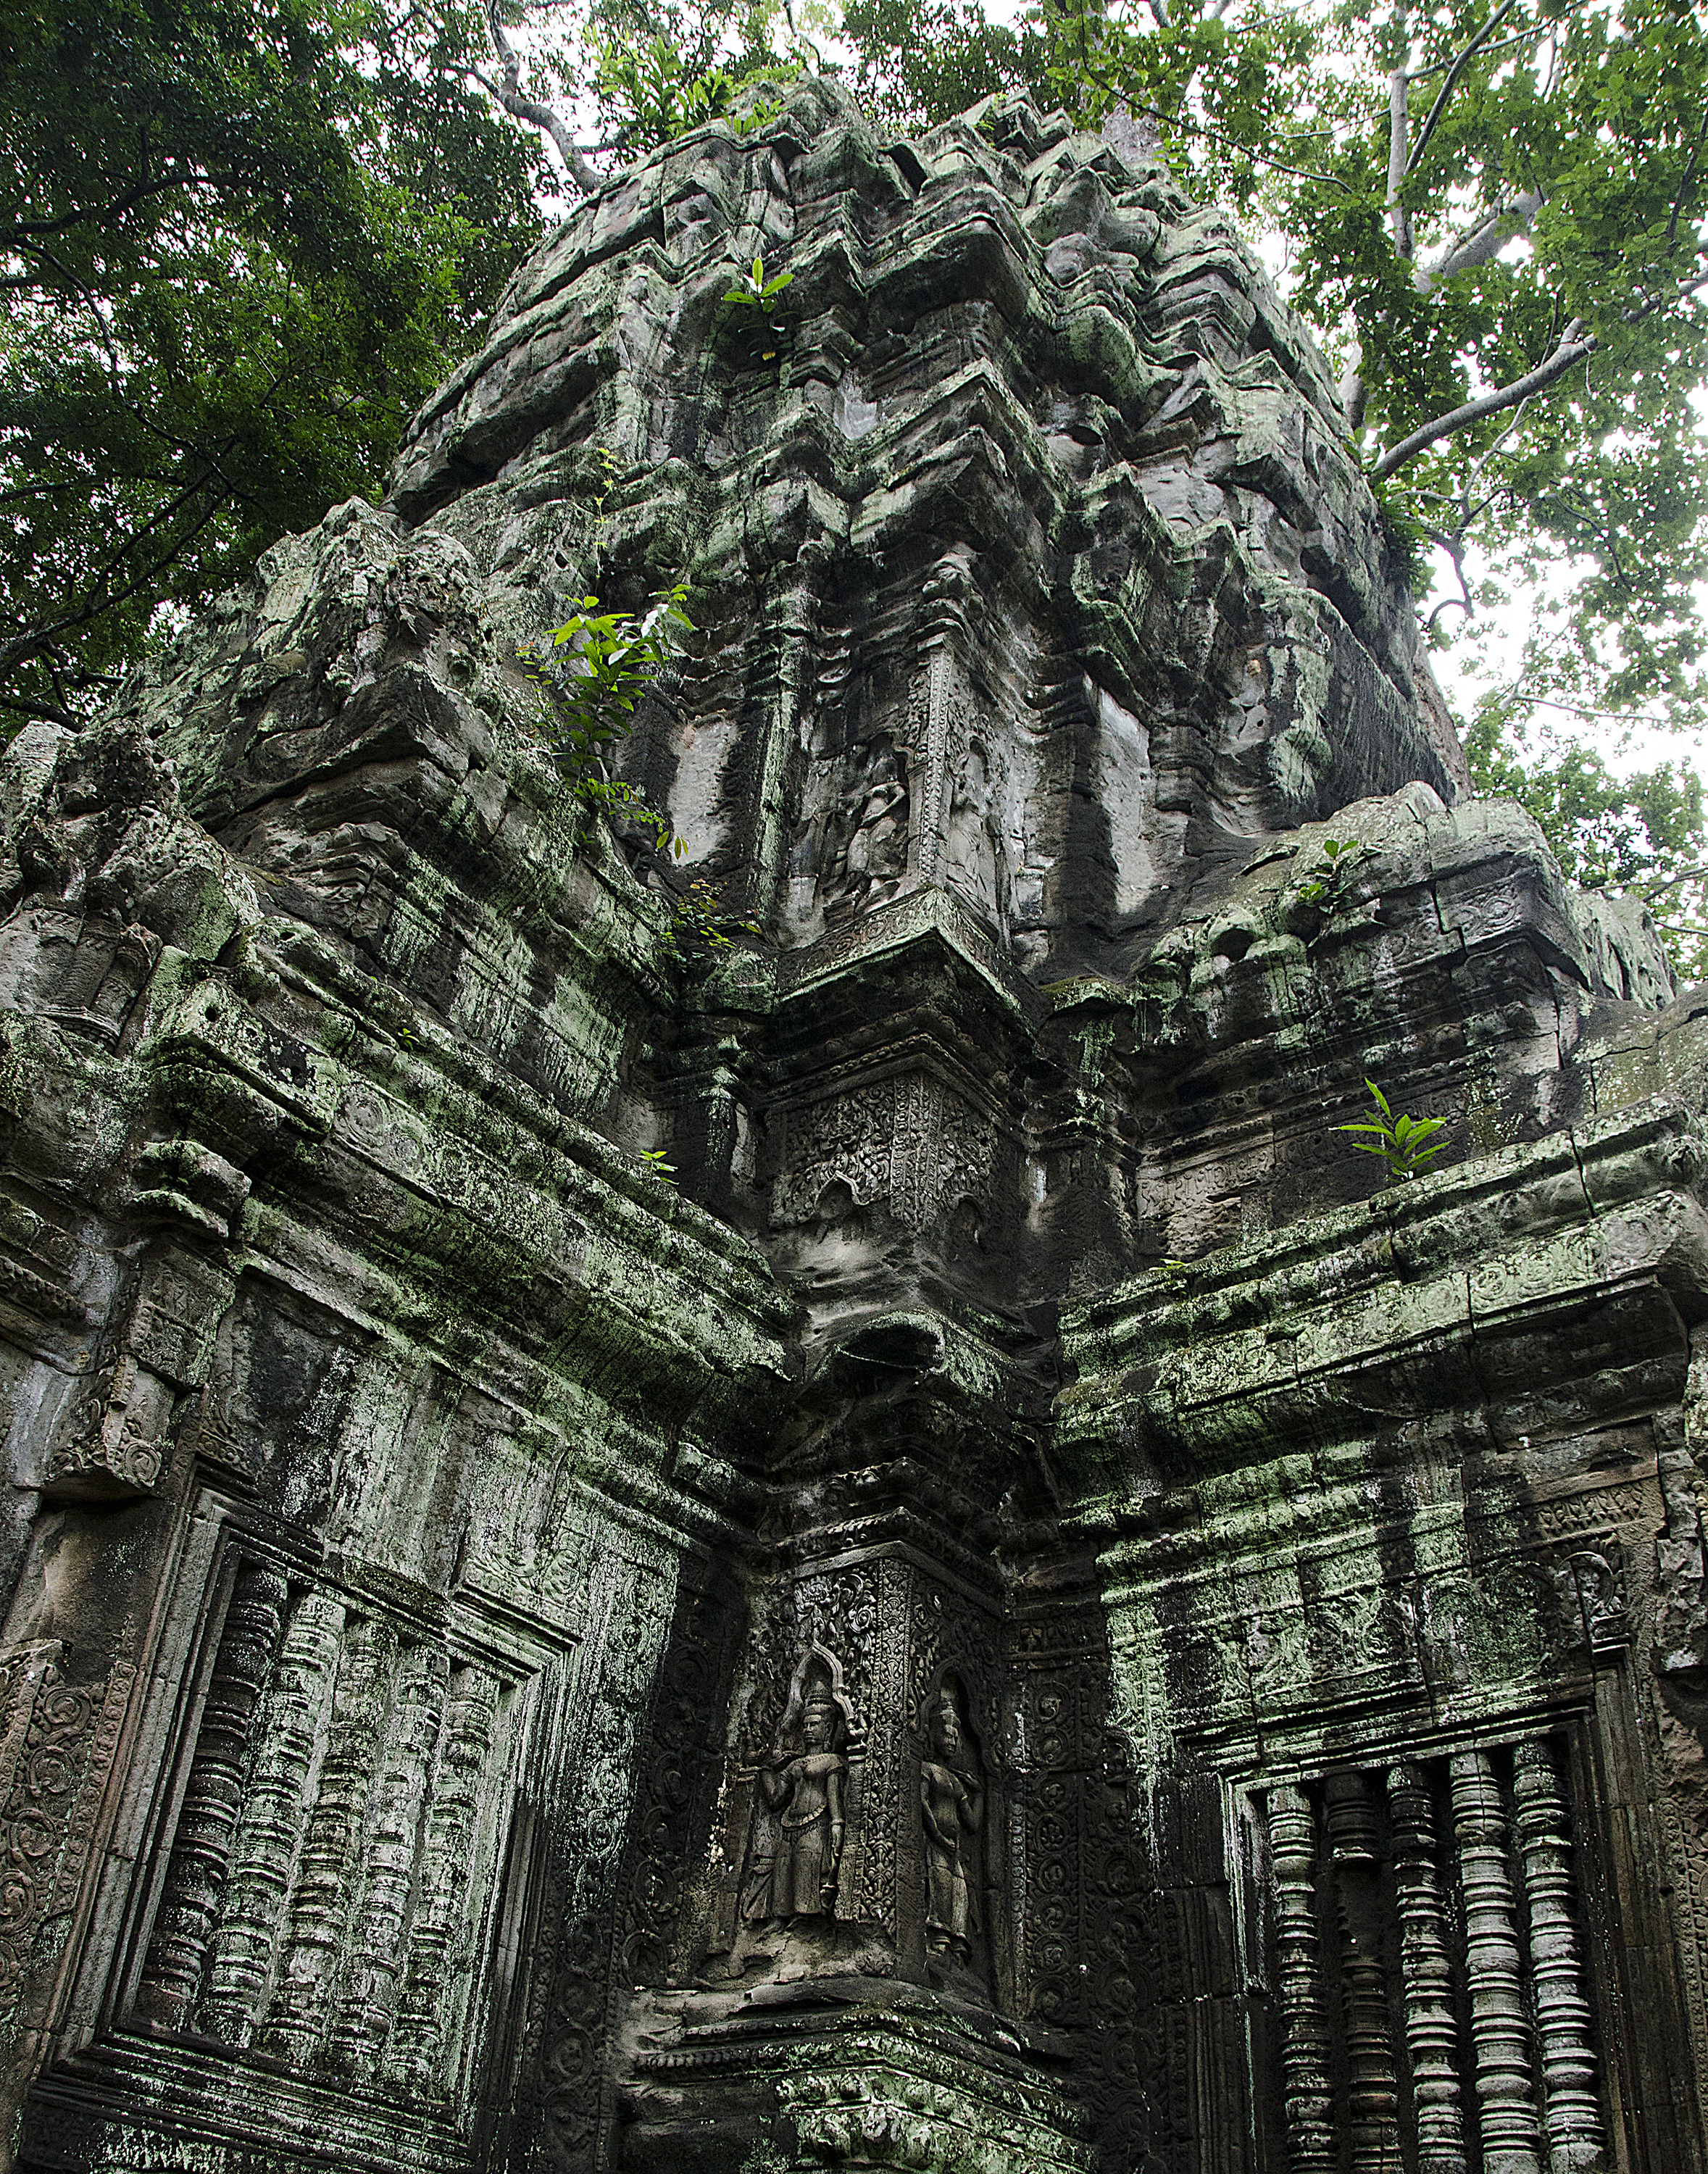 Spencer_Drake_Jungle_Temple_Photography_cambodia_Angkor_Wat_jungle_temple_ruins_architecture_travel.jpg